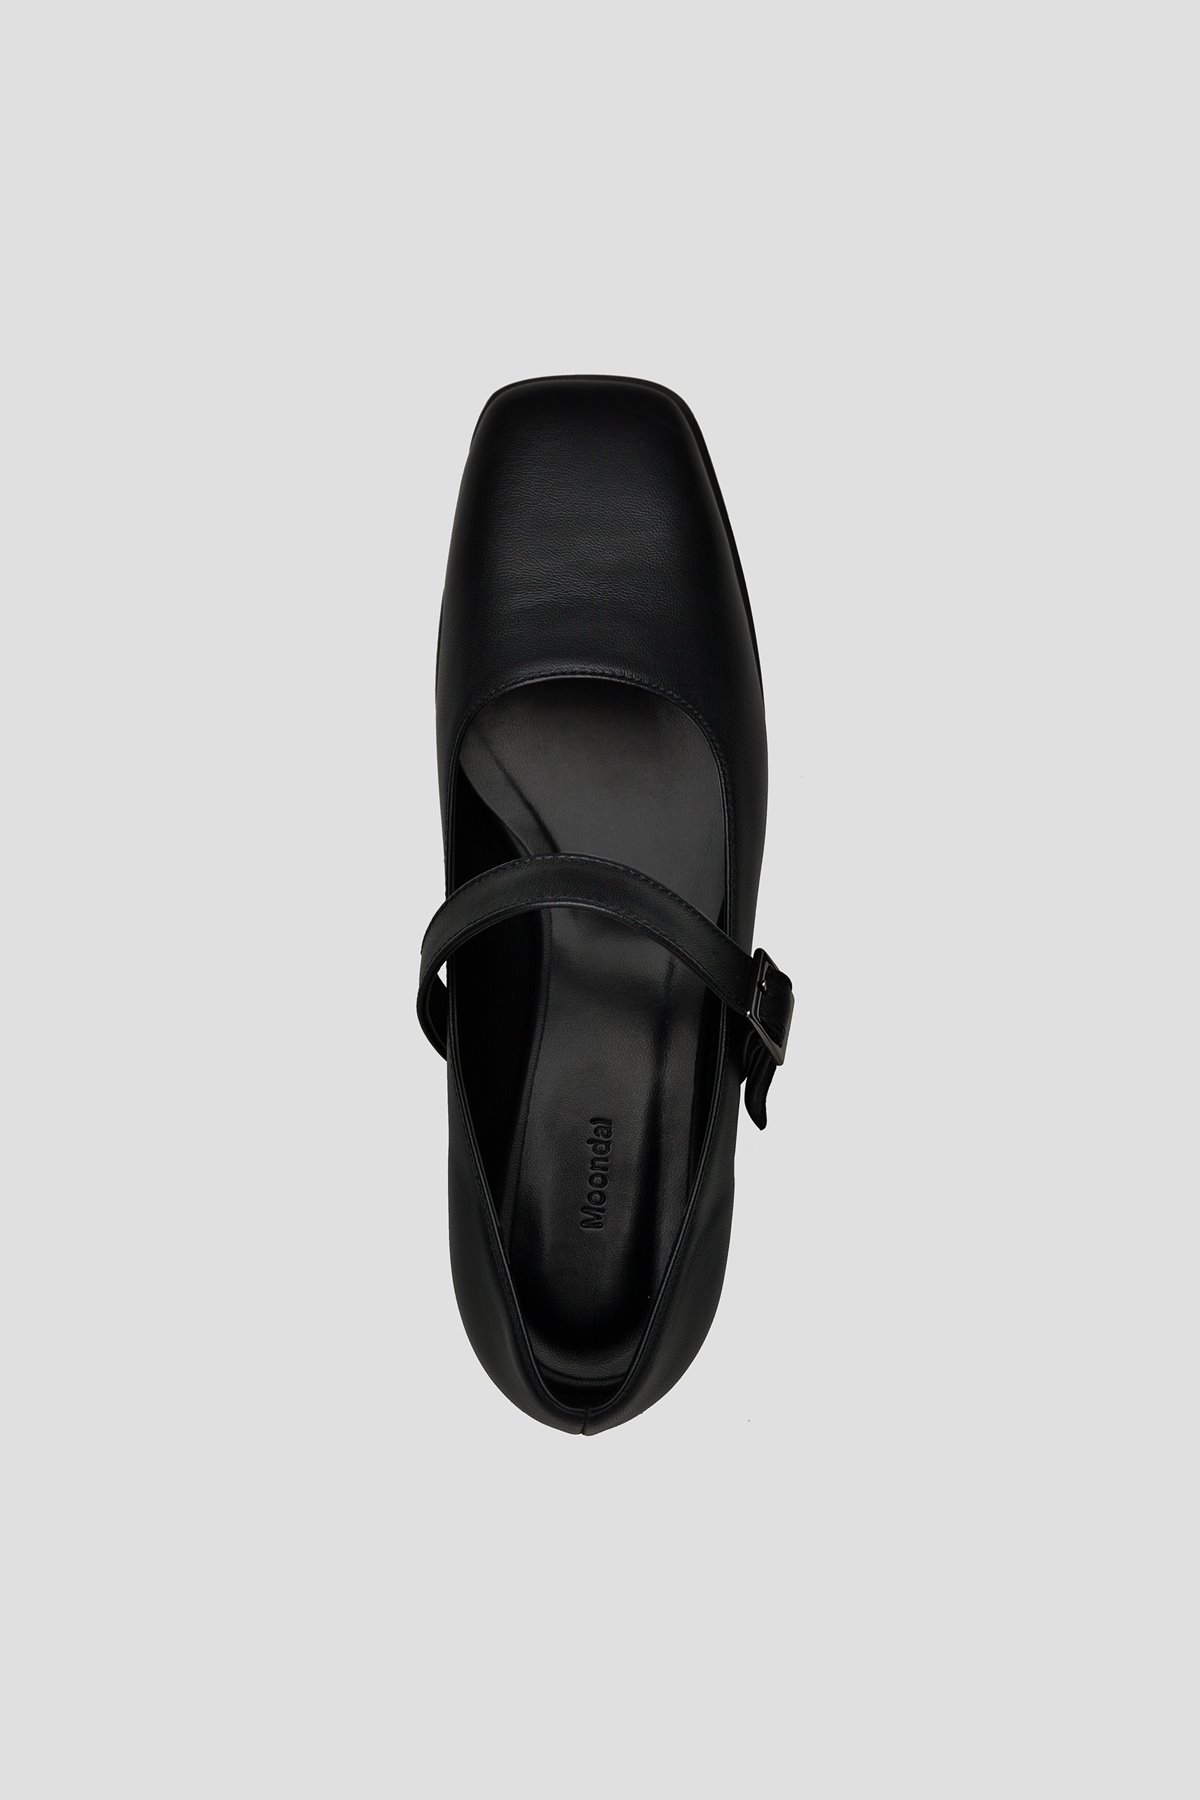 Strap Shoes (Black)